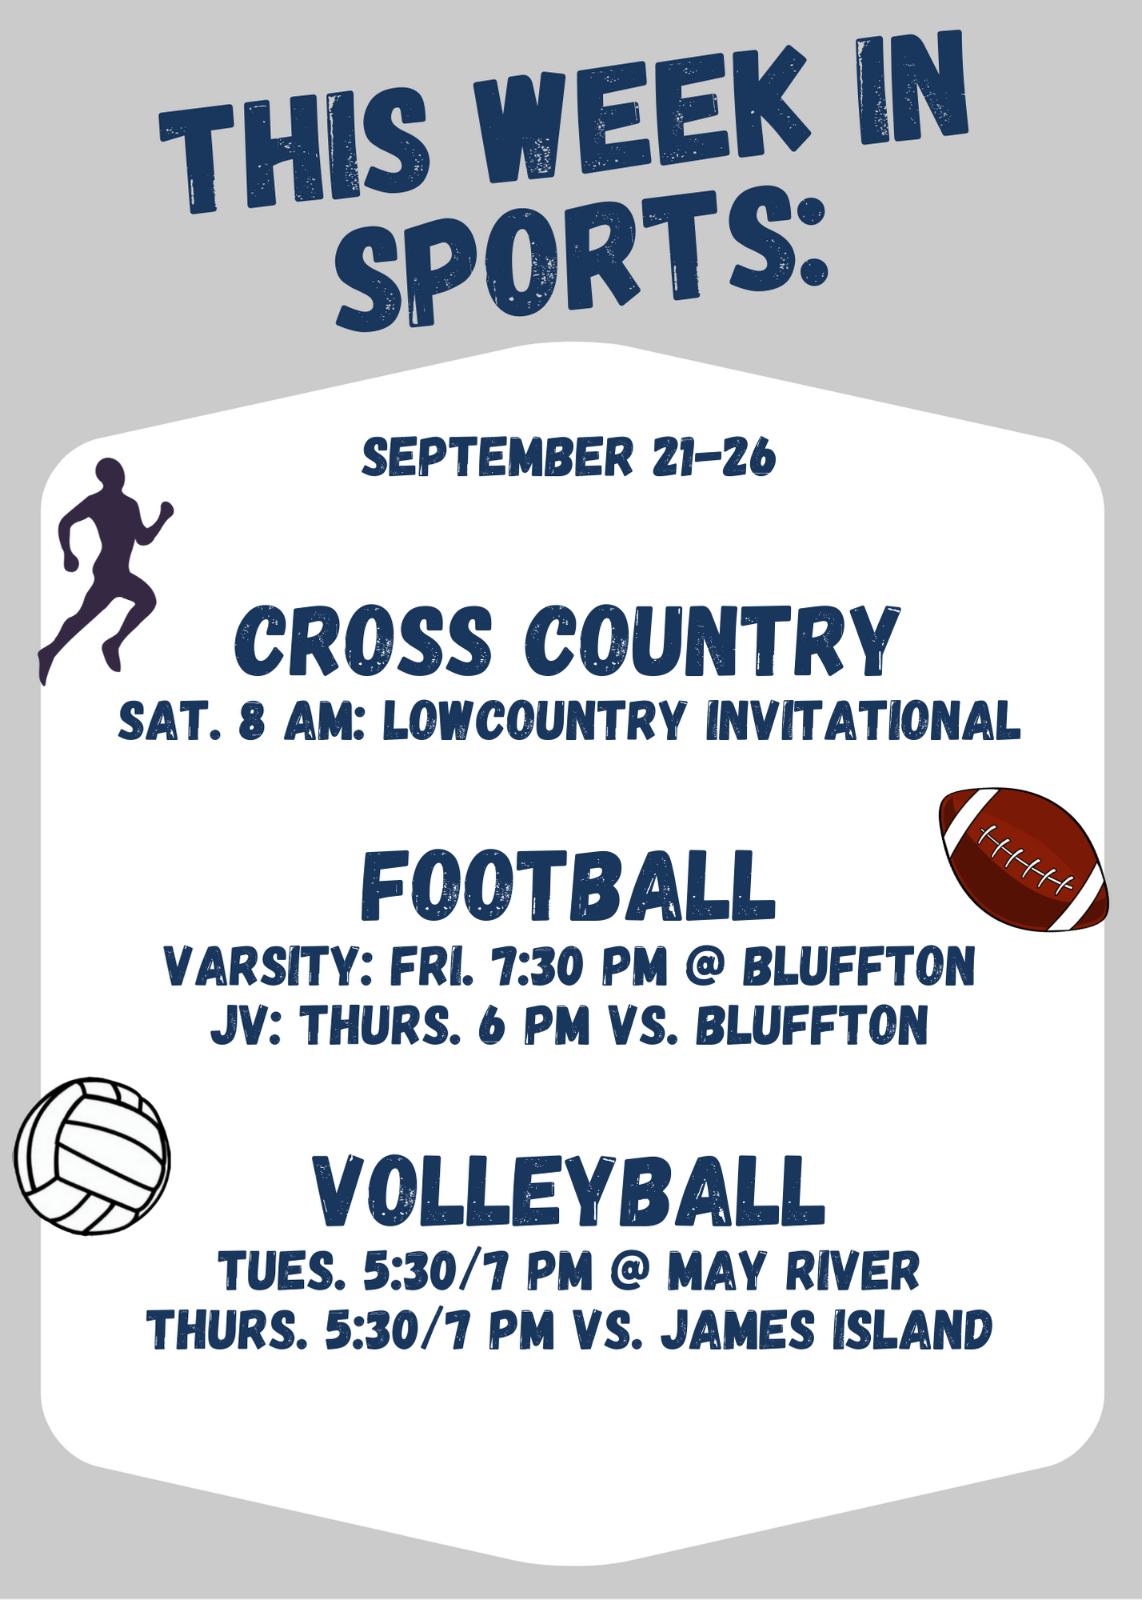 This Week in Sports: September 21-26